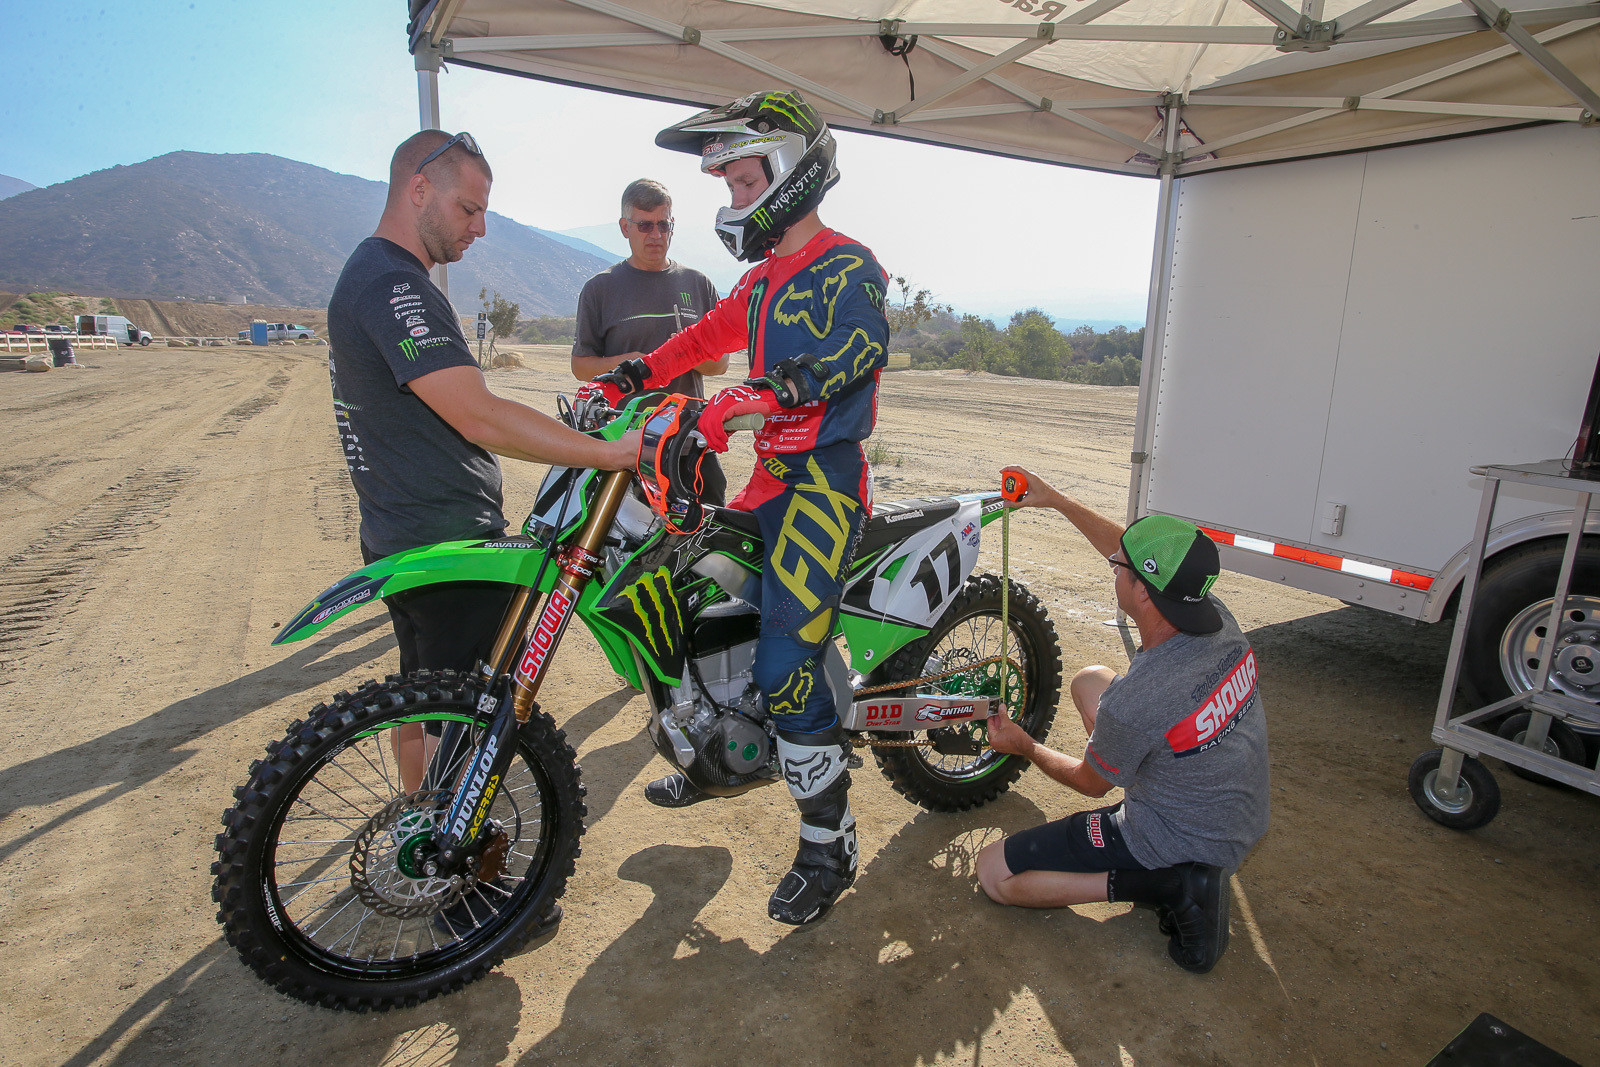 Joey Savatgy is Johnny O'Mara's current trainee. Previous racers he's worked with include Ricky Carmichael, Ryan Dungey, James Stewart, Jeremy Martin, and Thomas Covington.